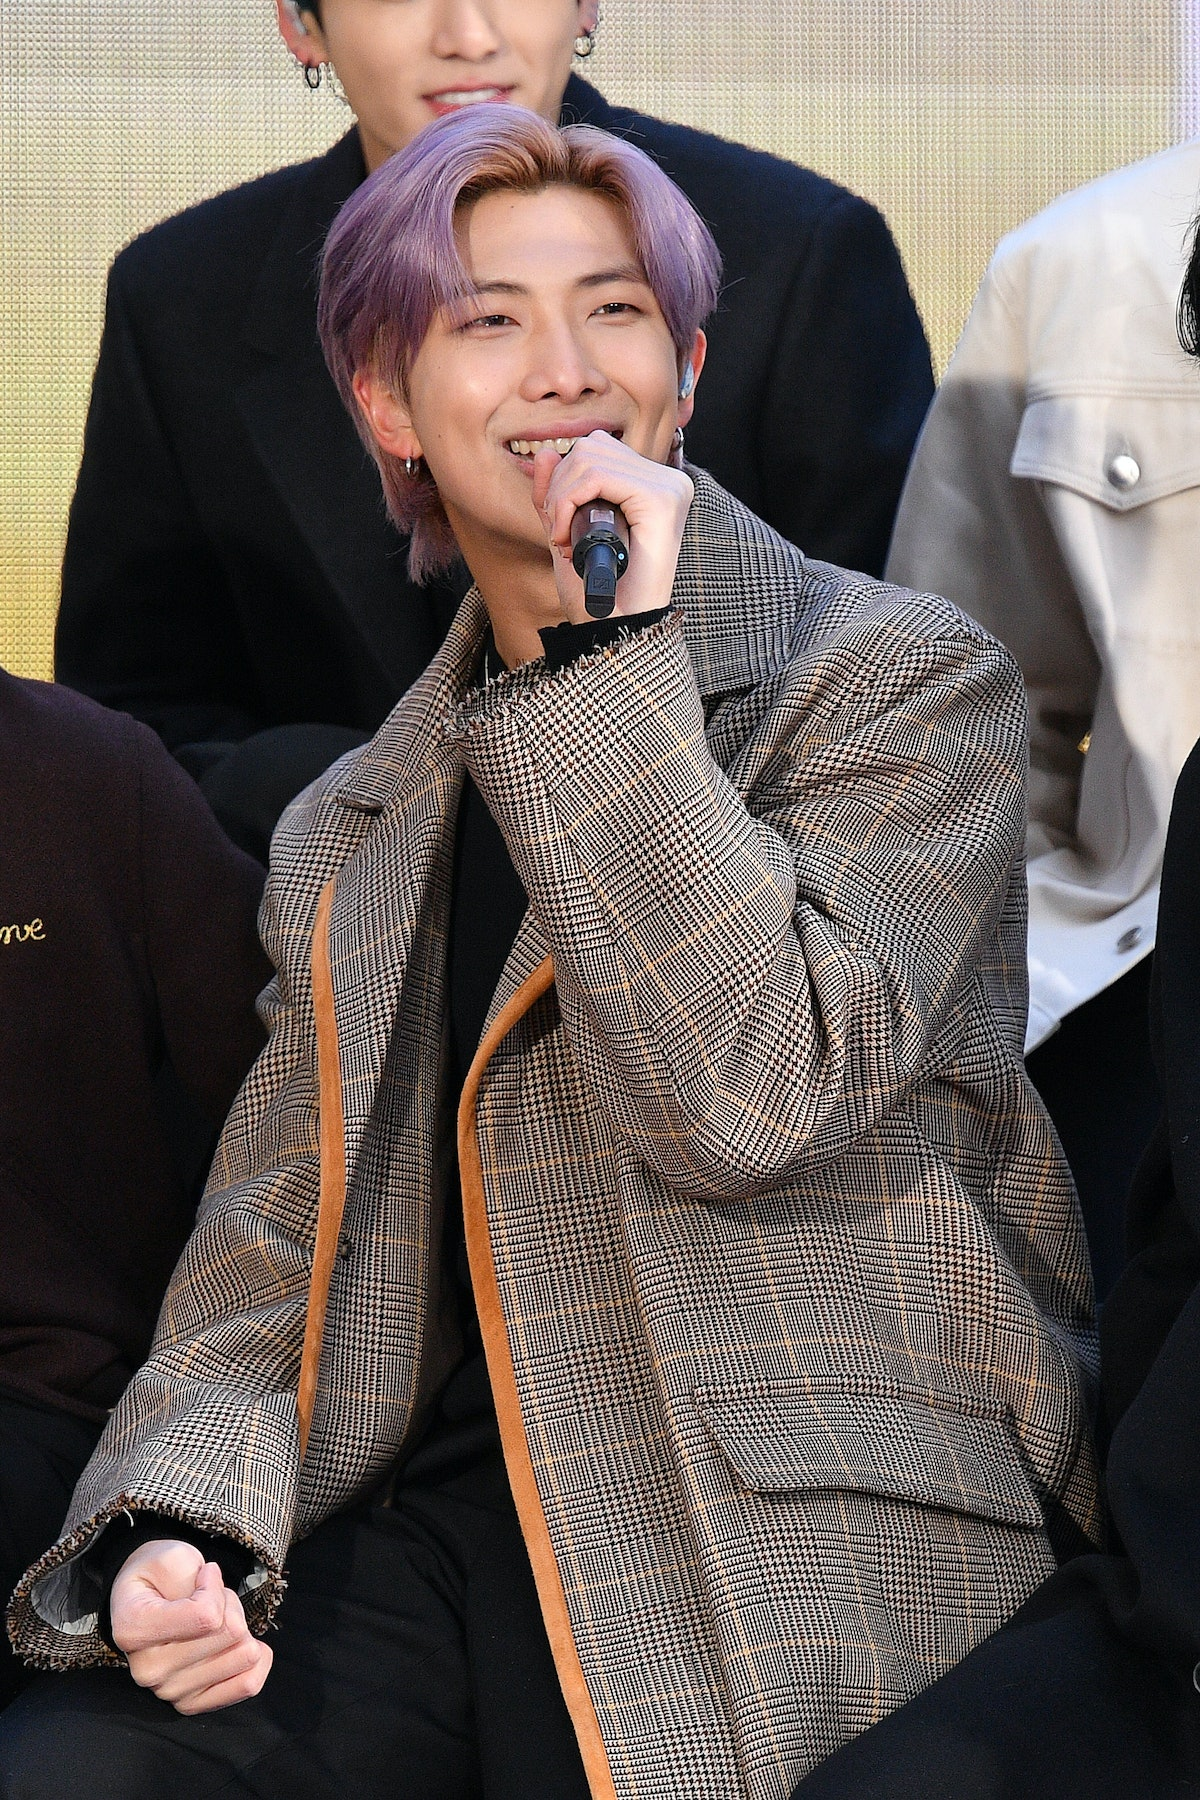 BTS' RM's quotes teasing another album will make ARMYs so excited for what's to come.